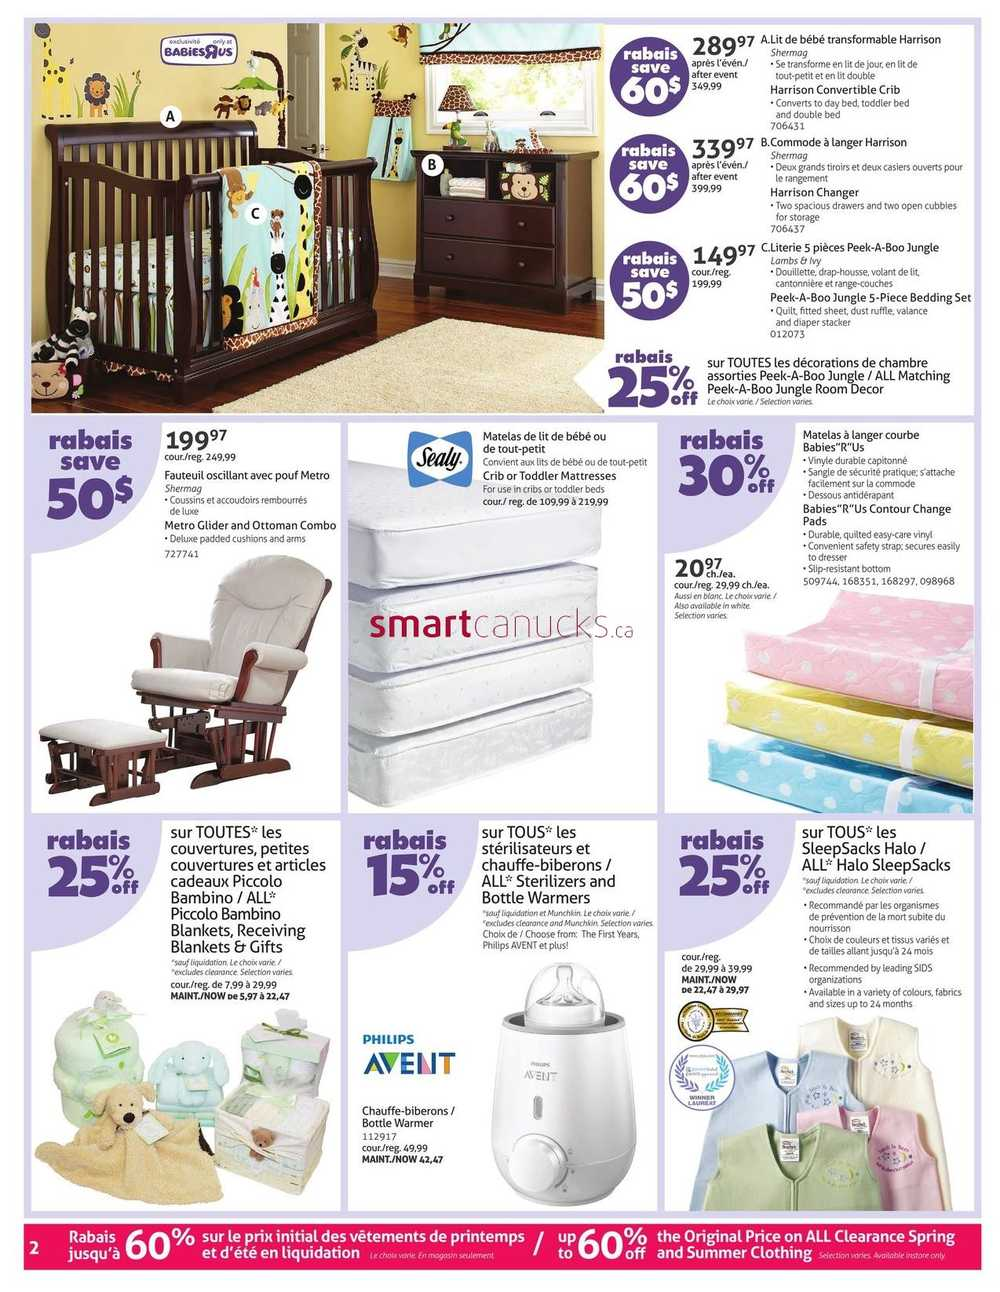 Sign up for babies r us coupons